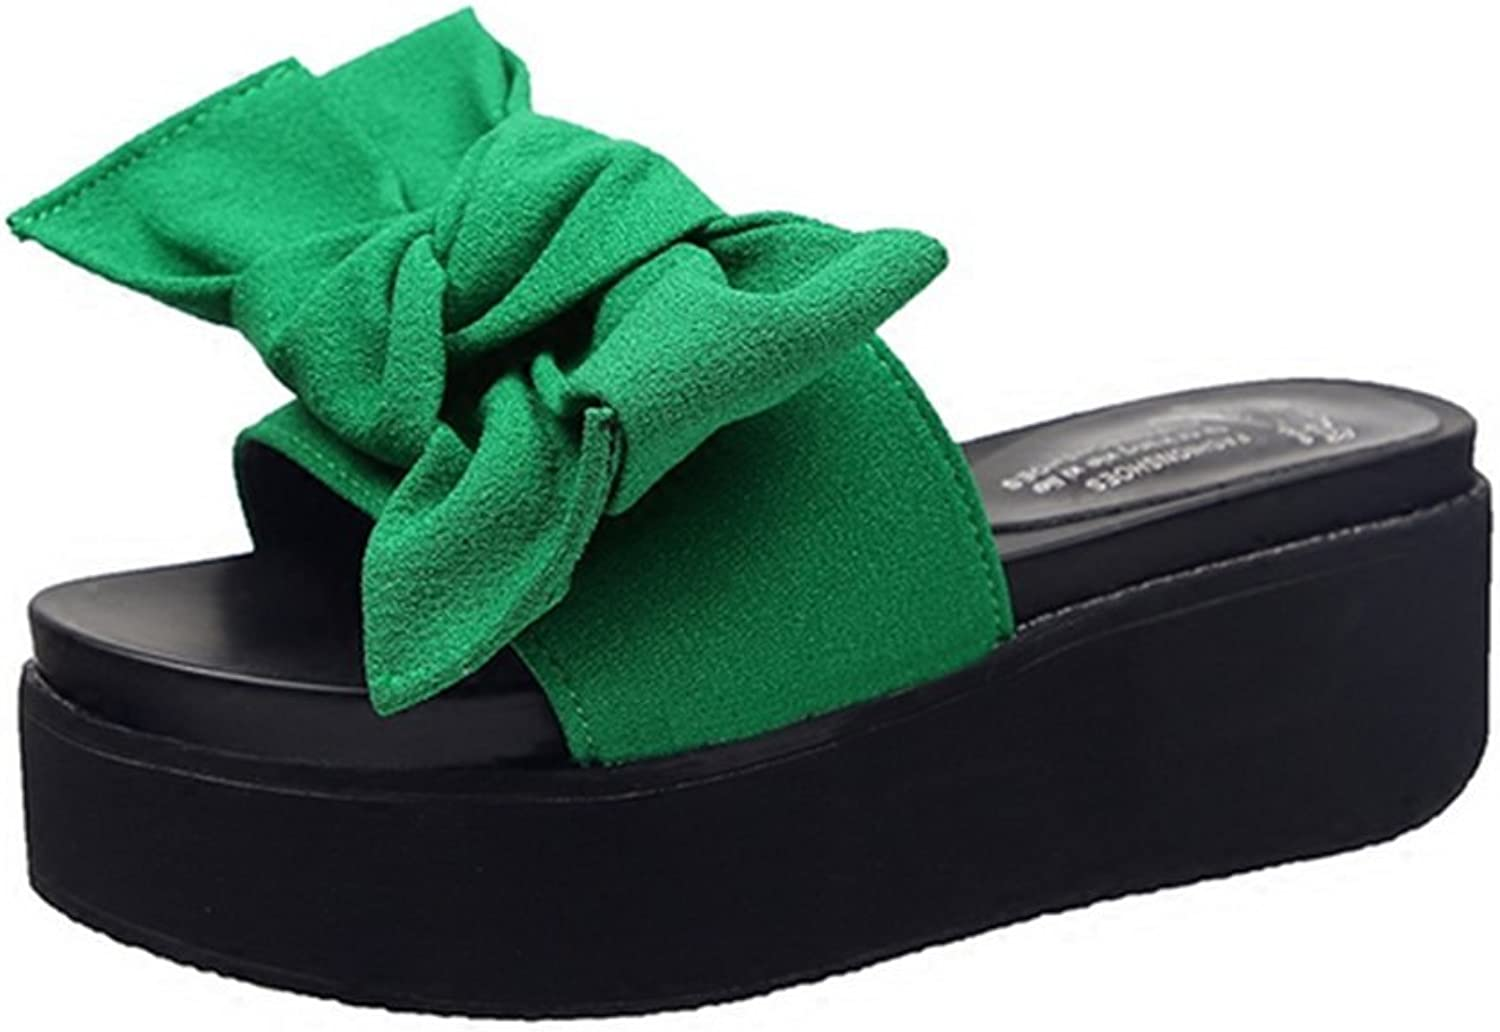 Weiwei Women's Summer Cool Slippers, Bow Slippers, Fashion High Heels, Slippers